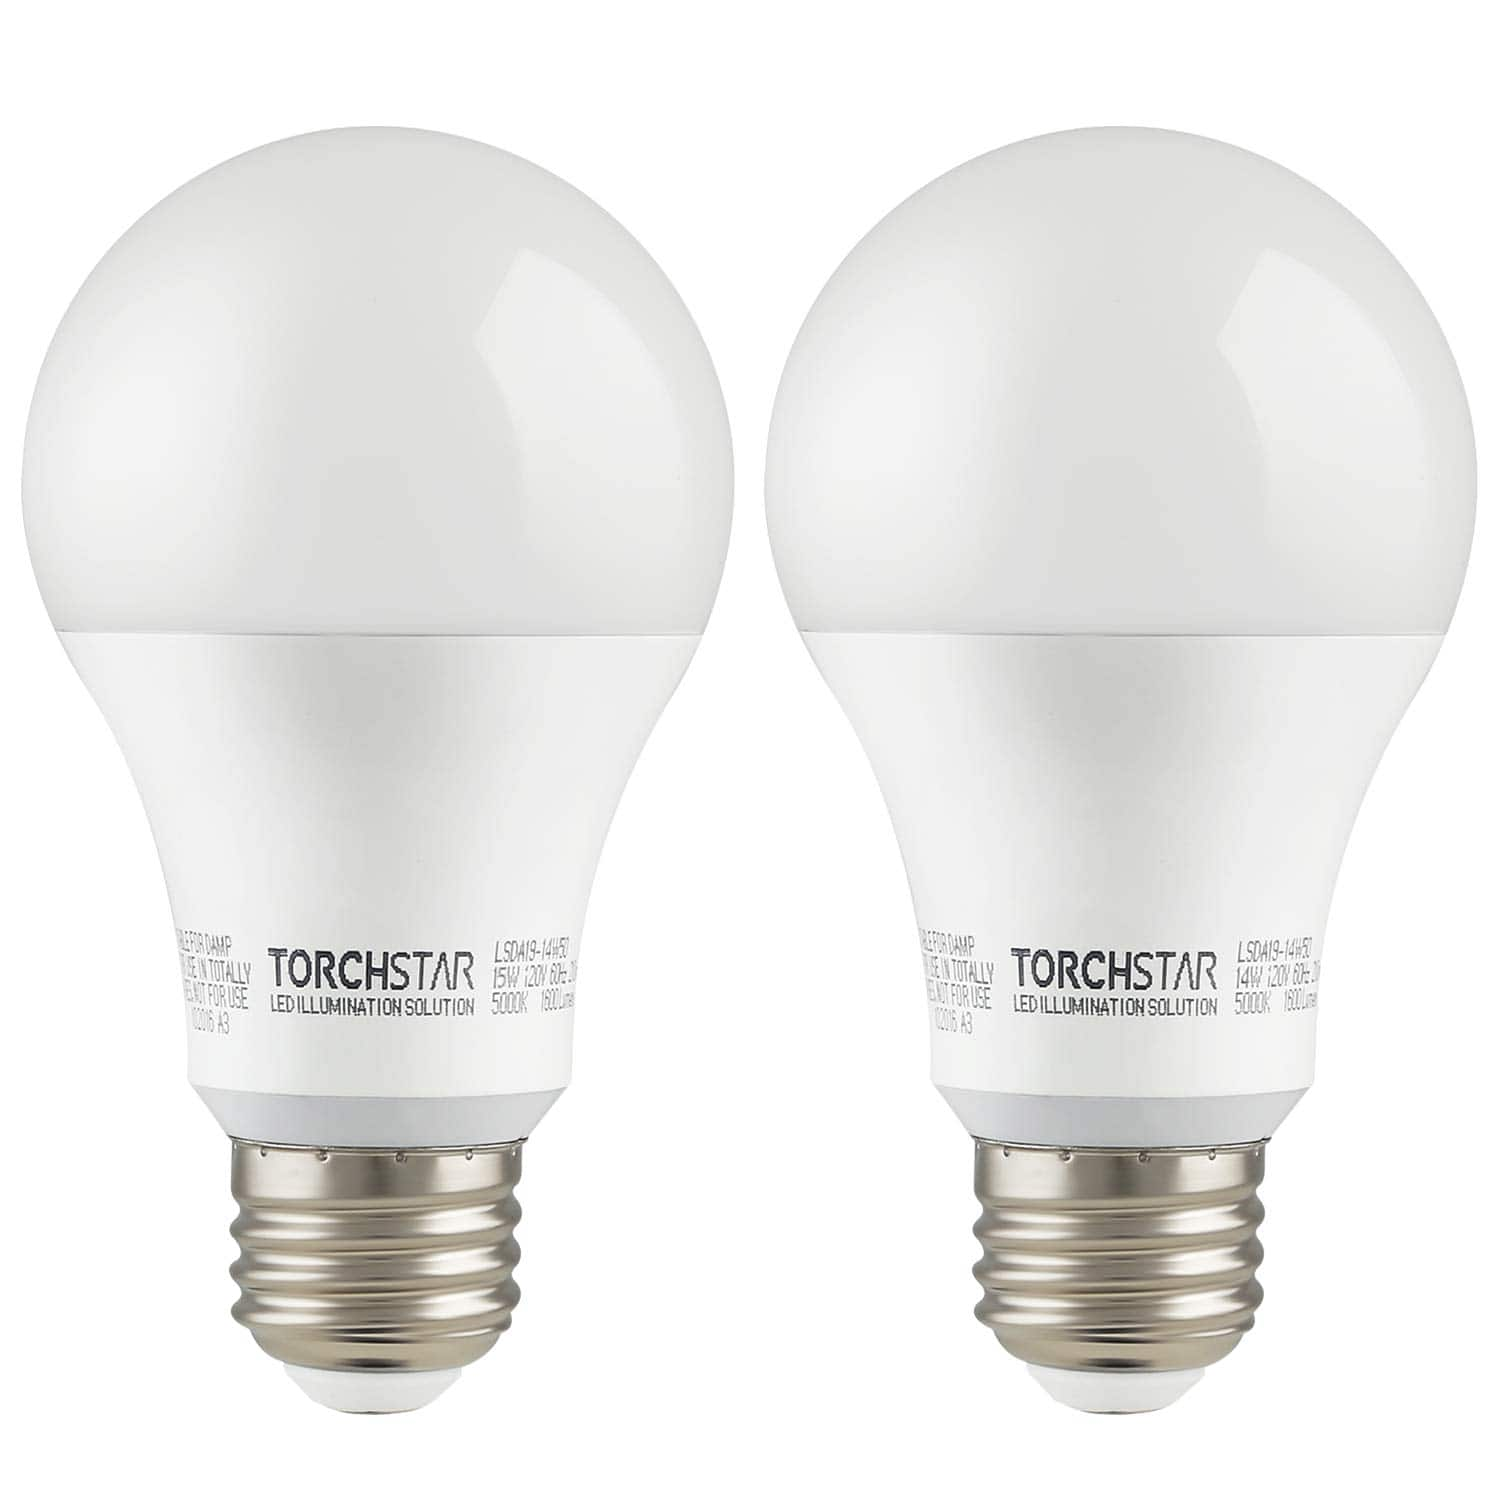 2 Pack/ 4 Pack 15W Anti-interference Garage Opener High Power A19 LED Bulb 5000K - $14.99 + FS